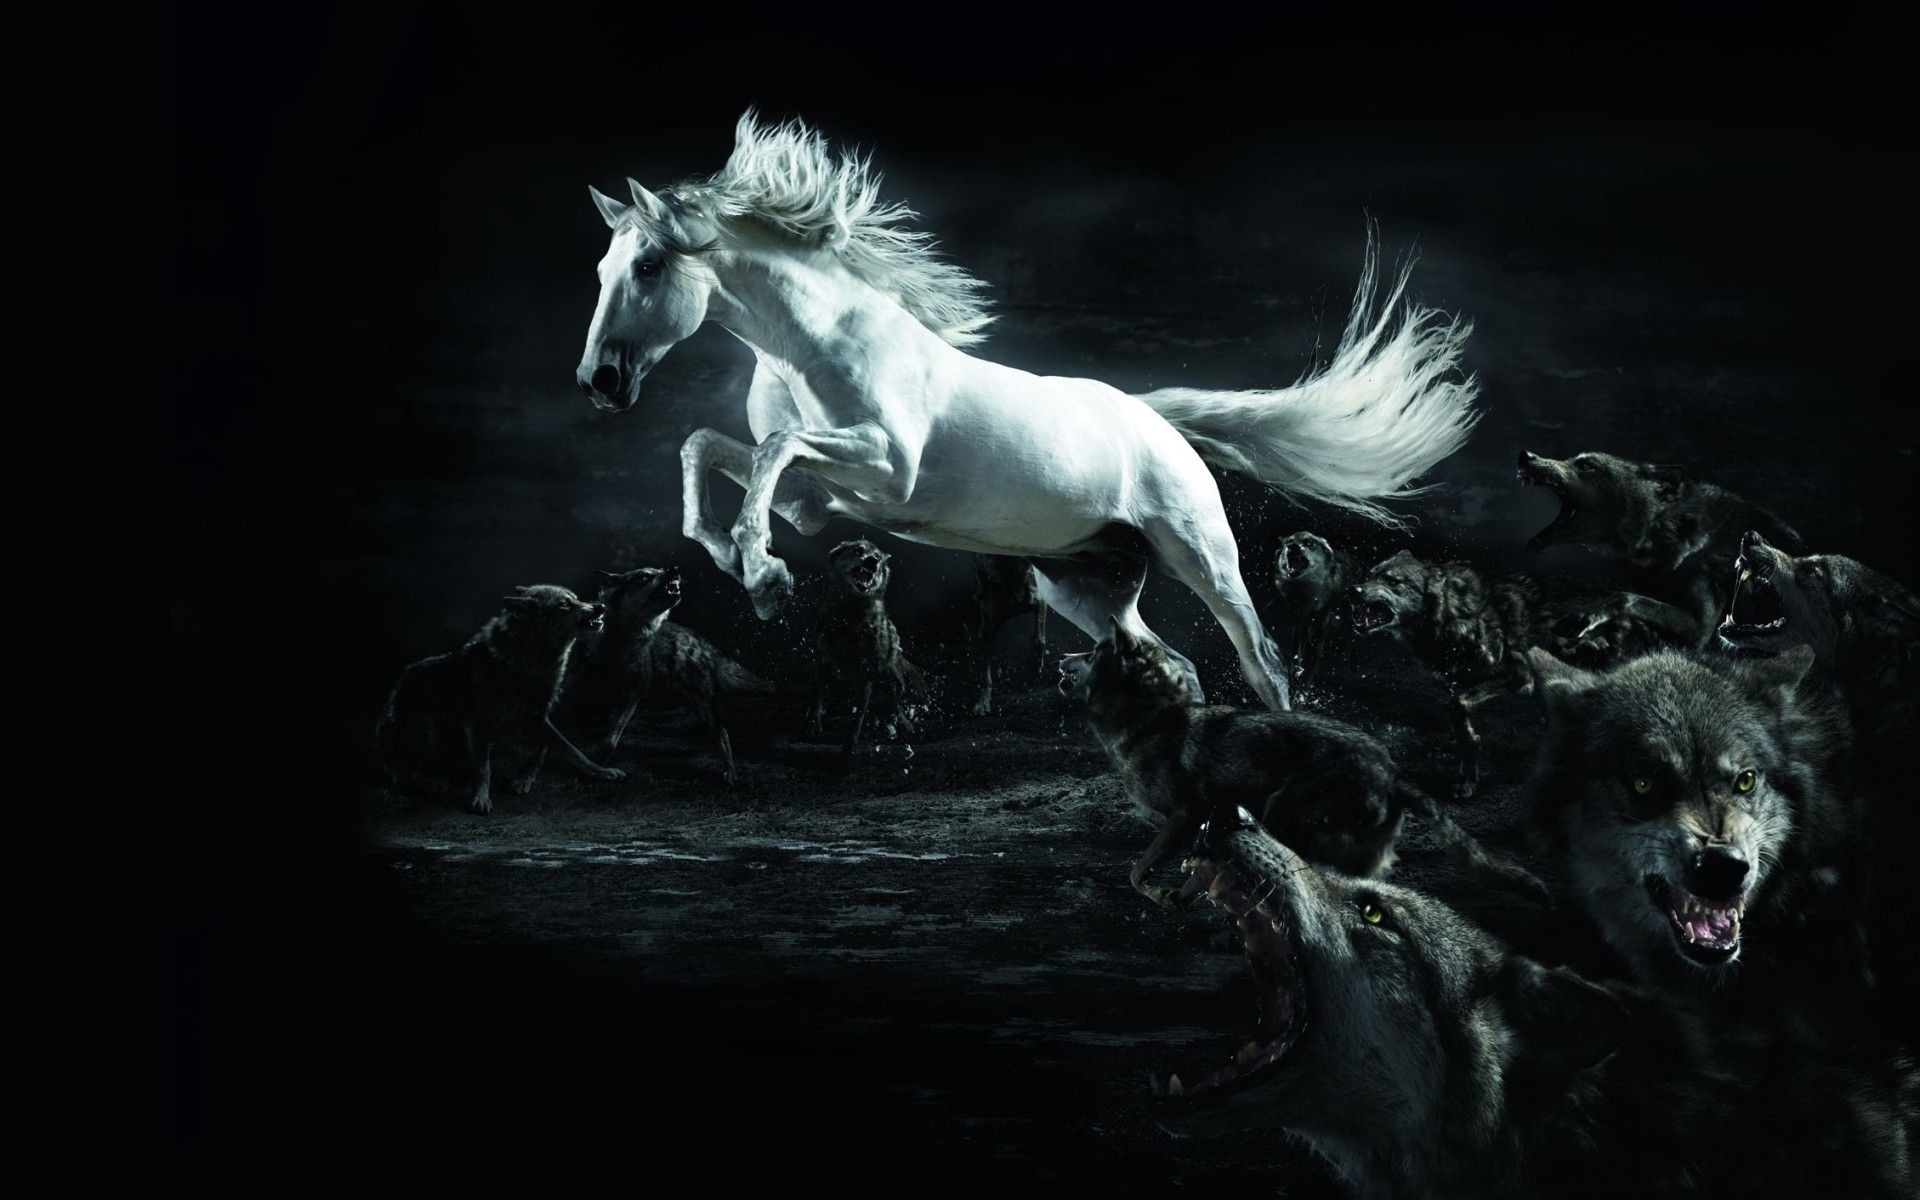 Free Download Running Horses Wallpaper 63 Images 1920x1200 For